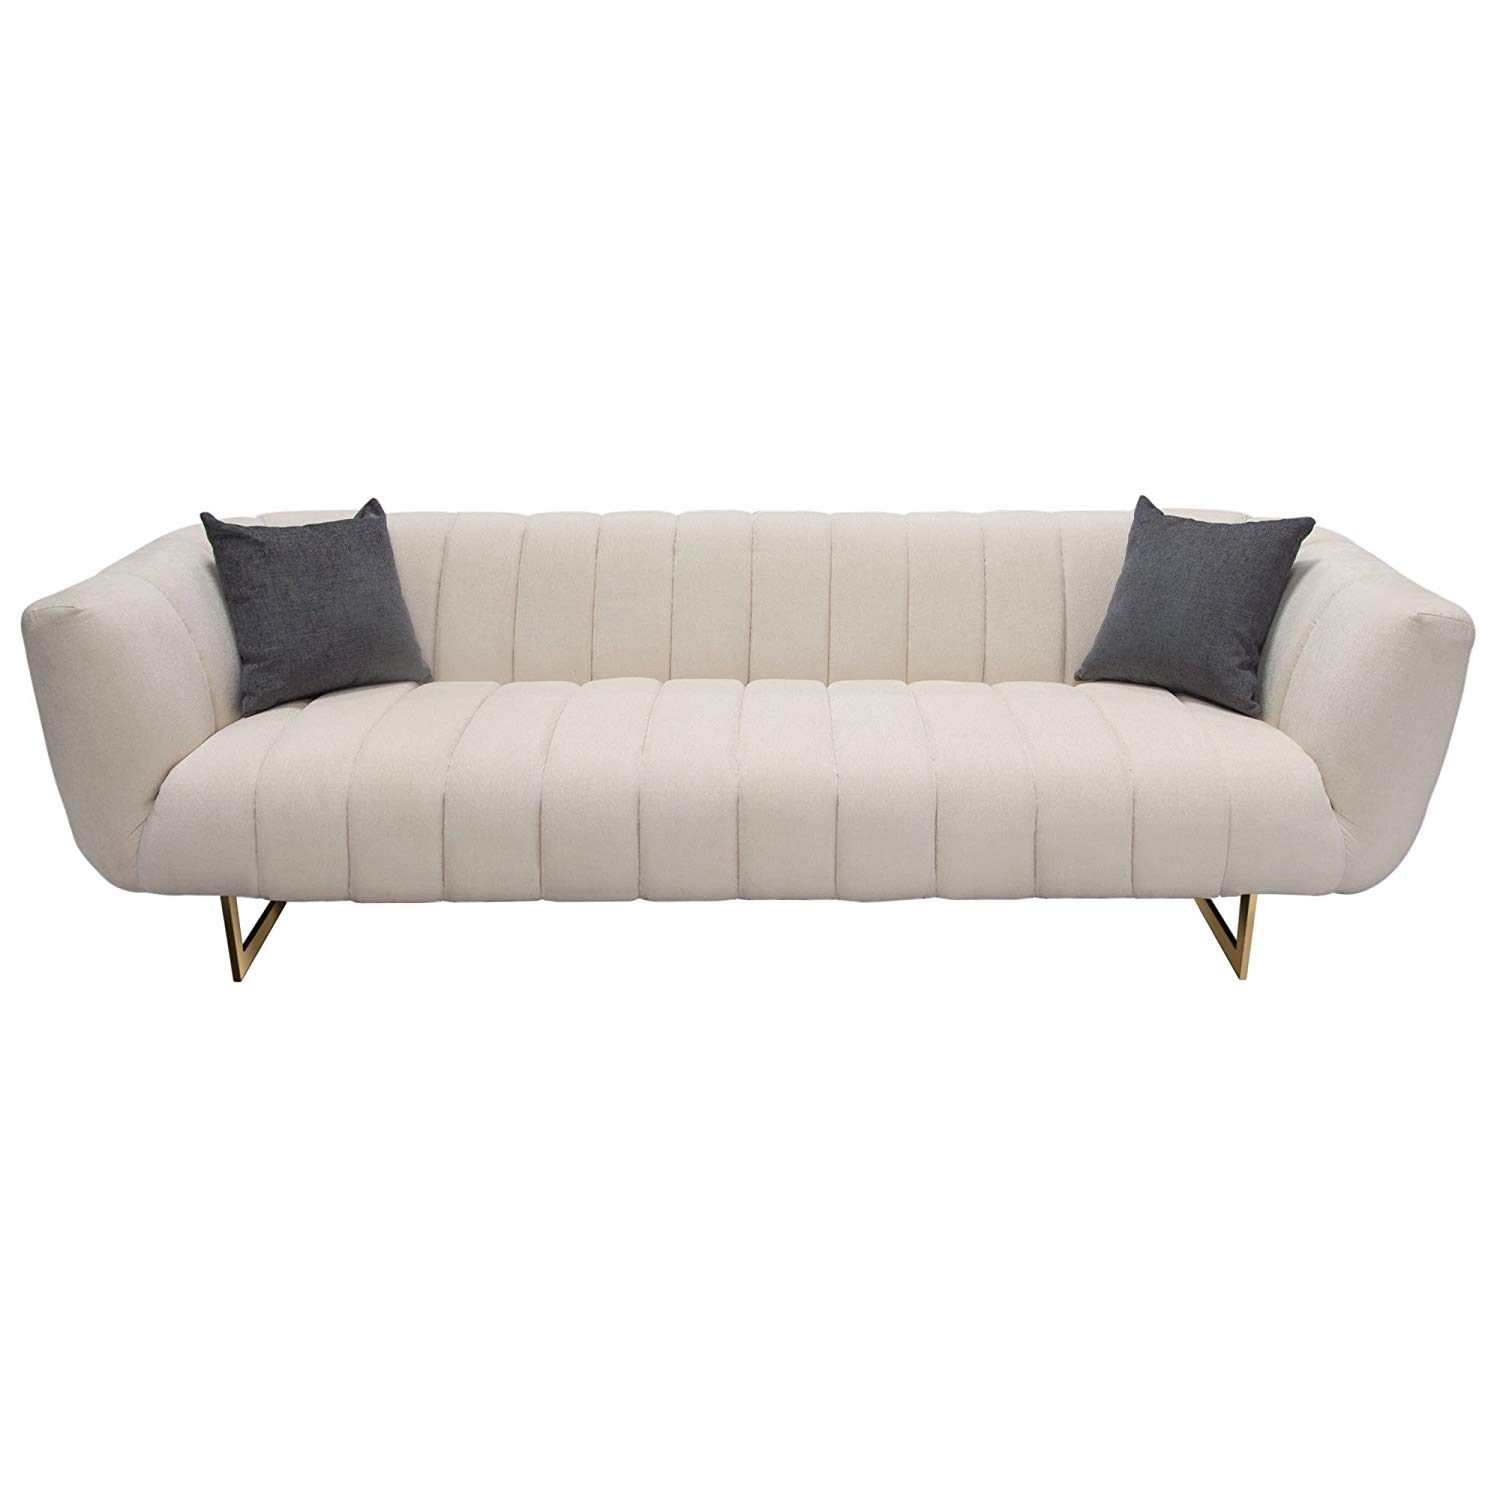 Get Quotations · Diamond Sofa VENUSSOCM Venus Cream Fabric Sofa W/  Contrasting Pillows U0026 Gold Finished Metal Base